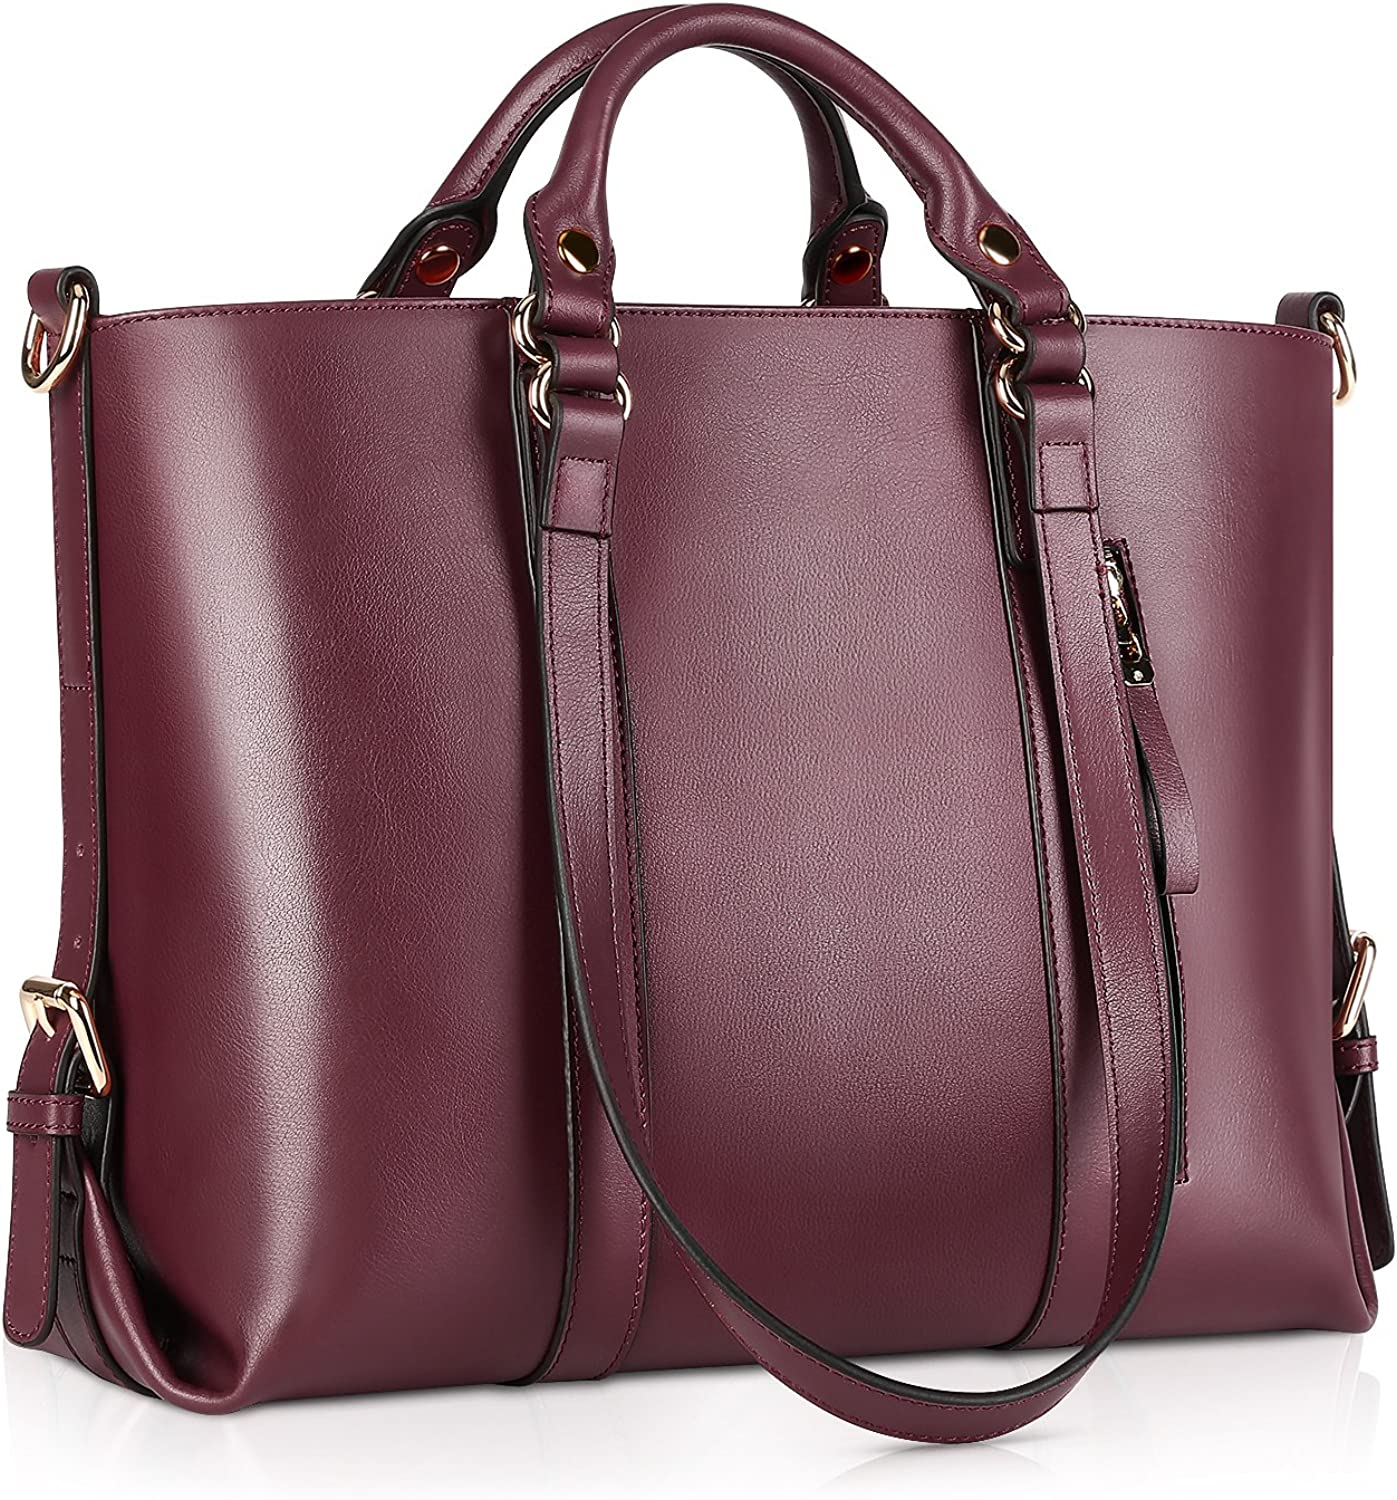 Kattee Women's Genuine Leather Handbags for Women, Tote Bags and Cross-body Purses